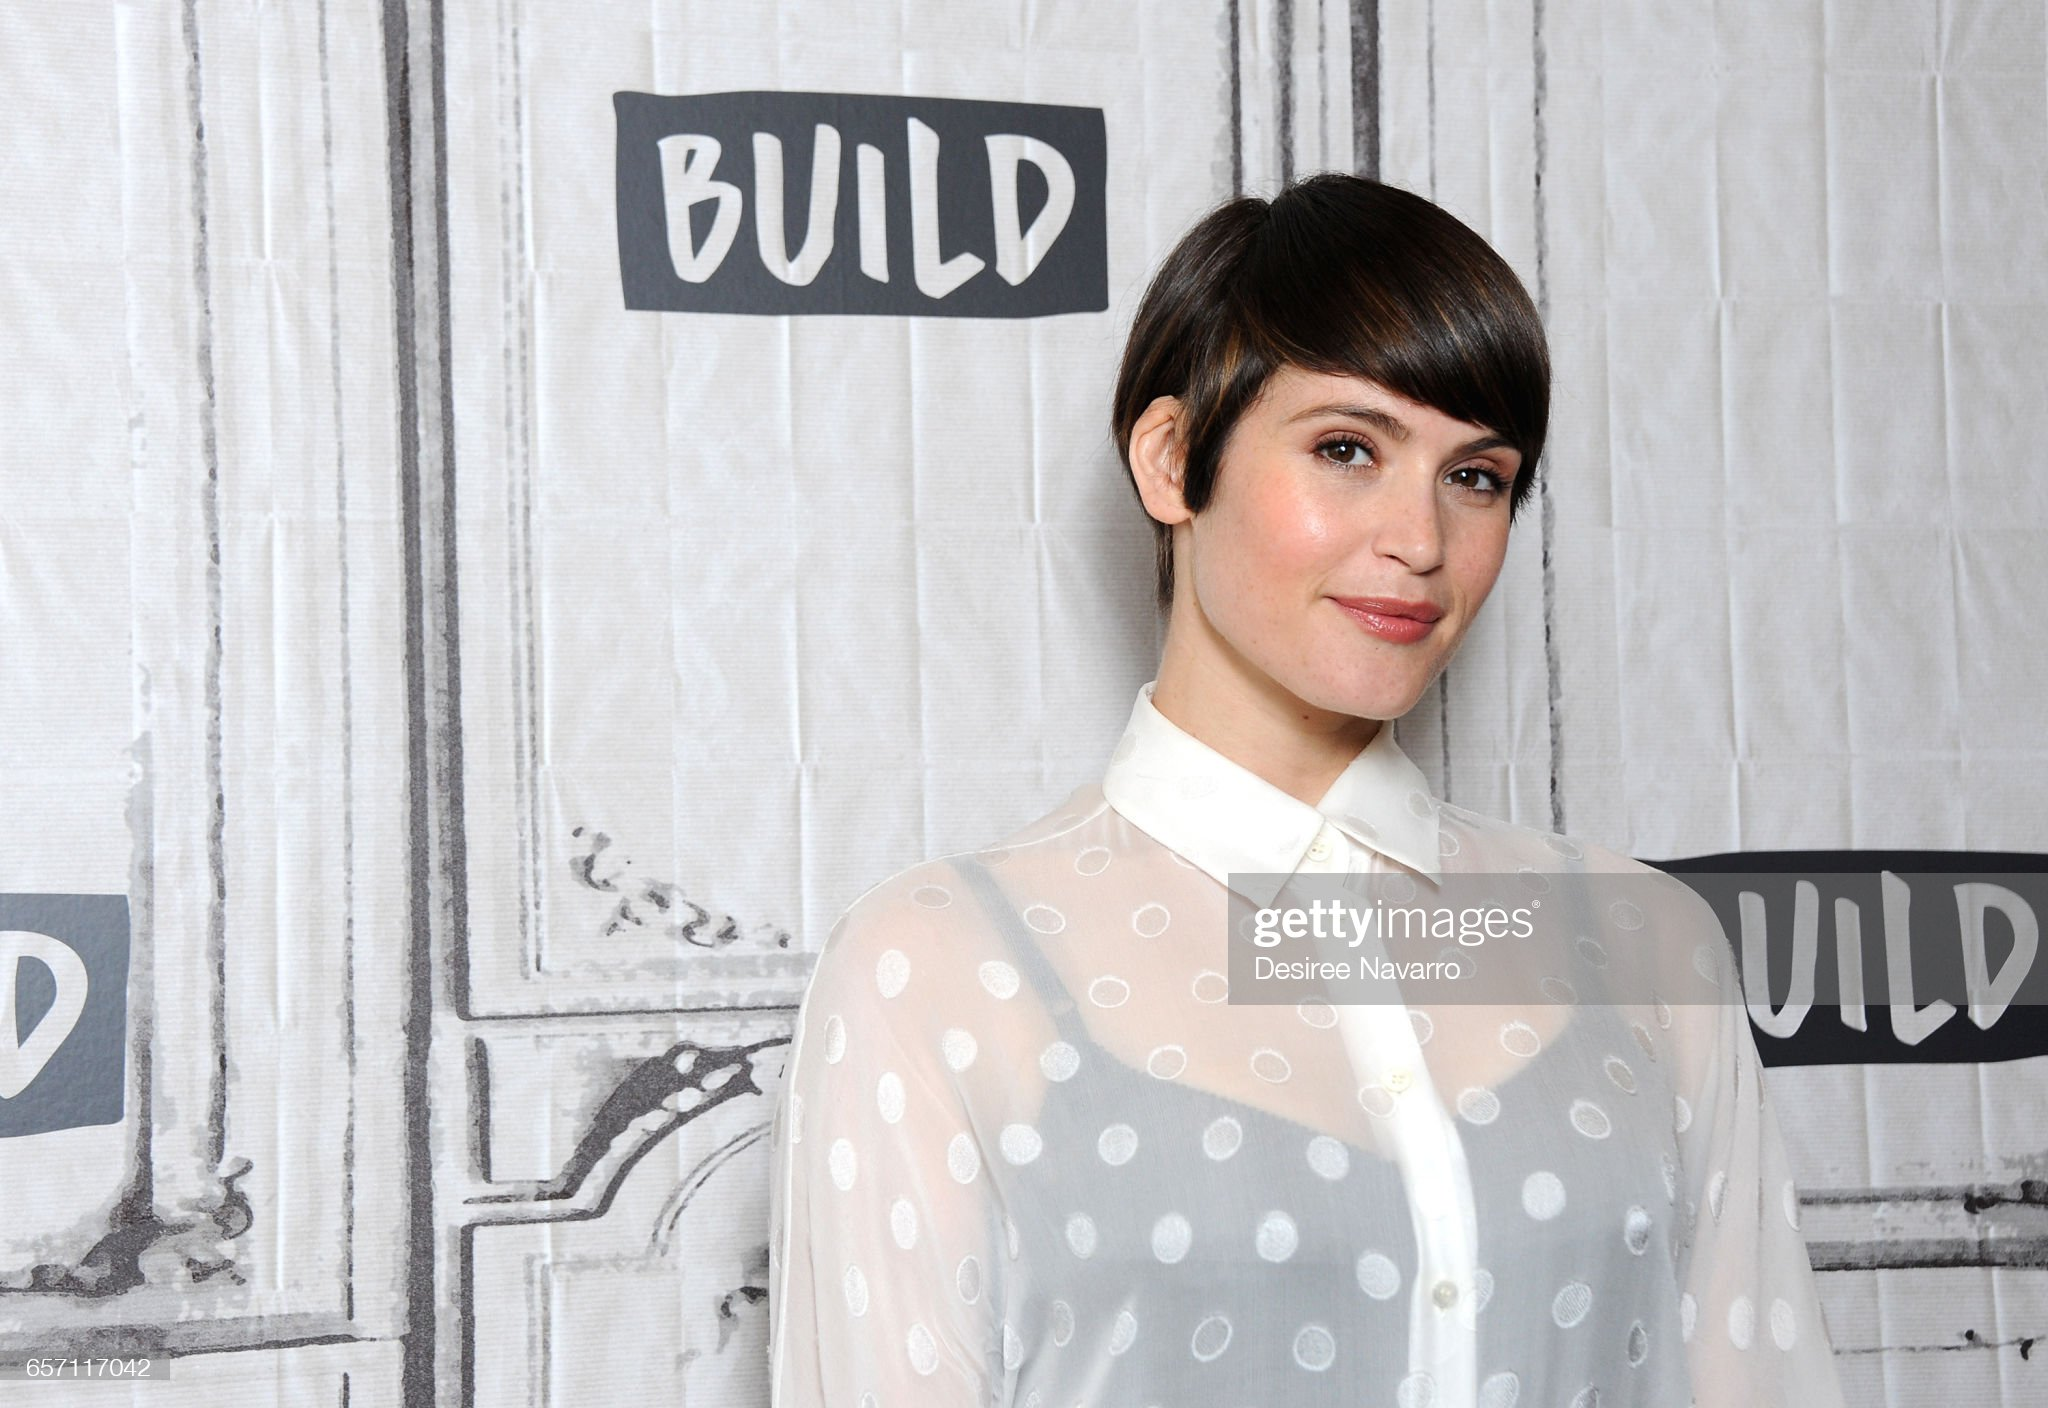 actress-gemma-arterton-attends-build-series-to-discuss-their-finest-picture-id657117042